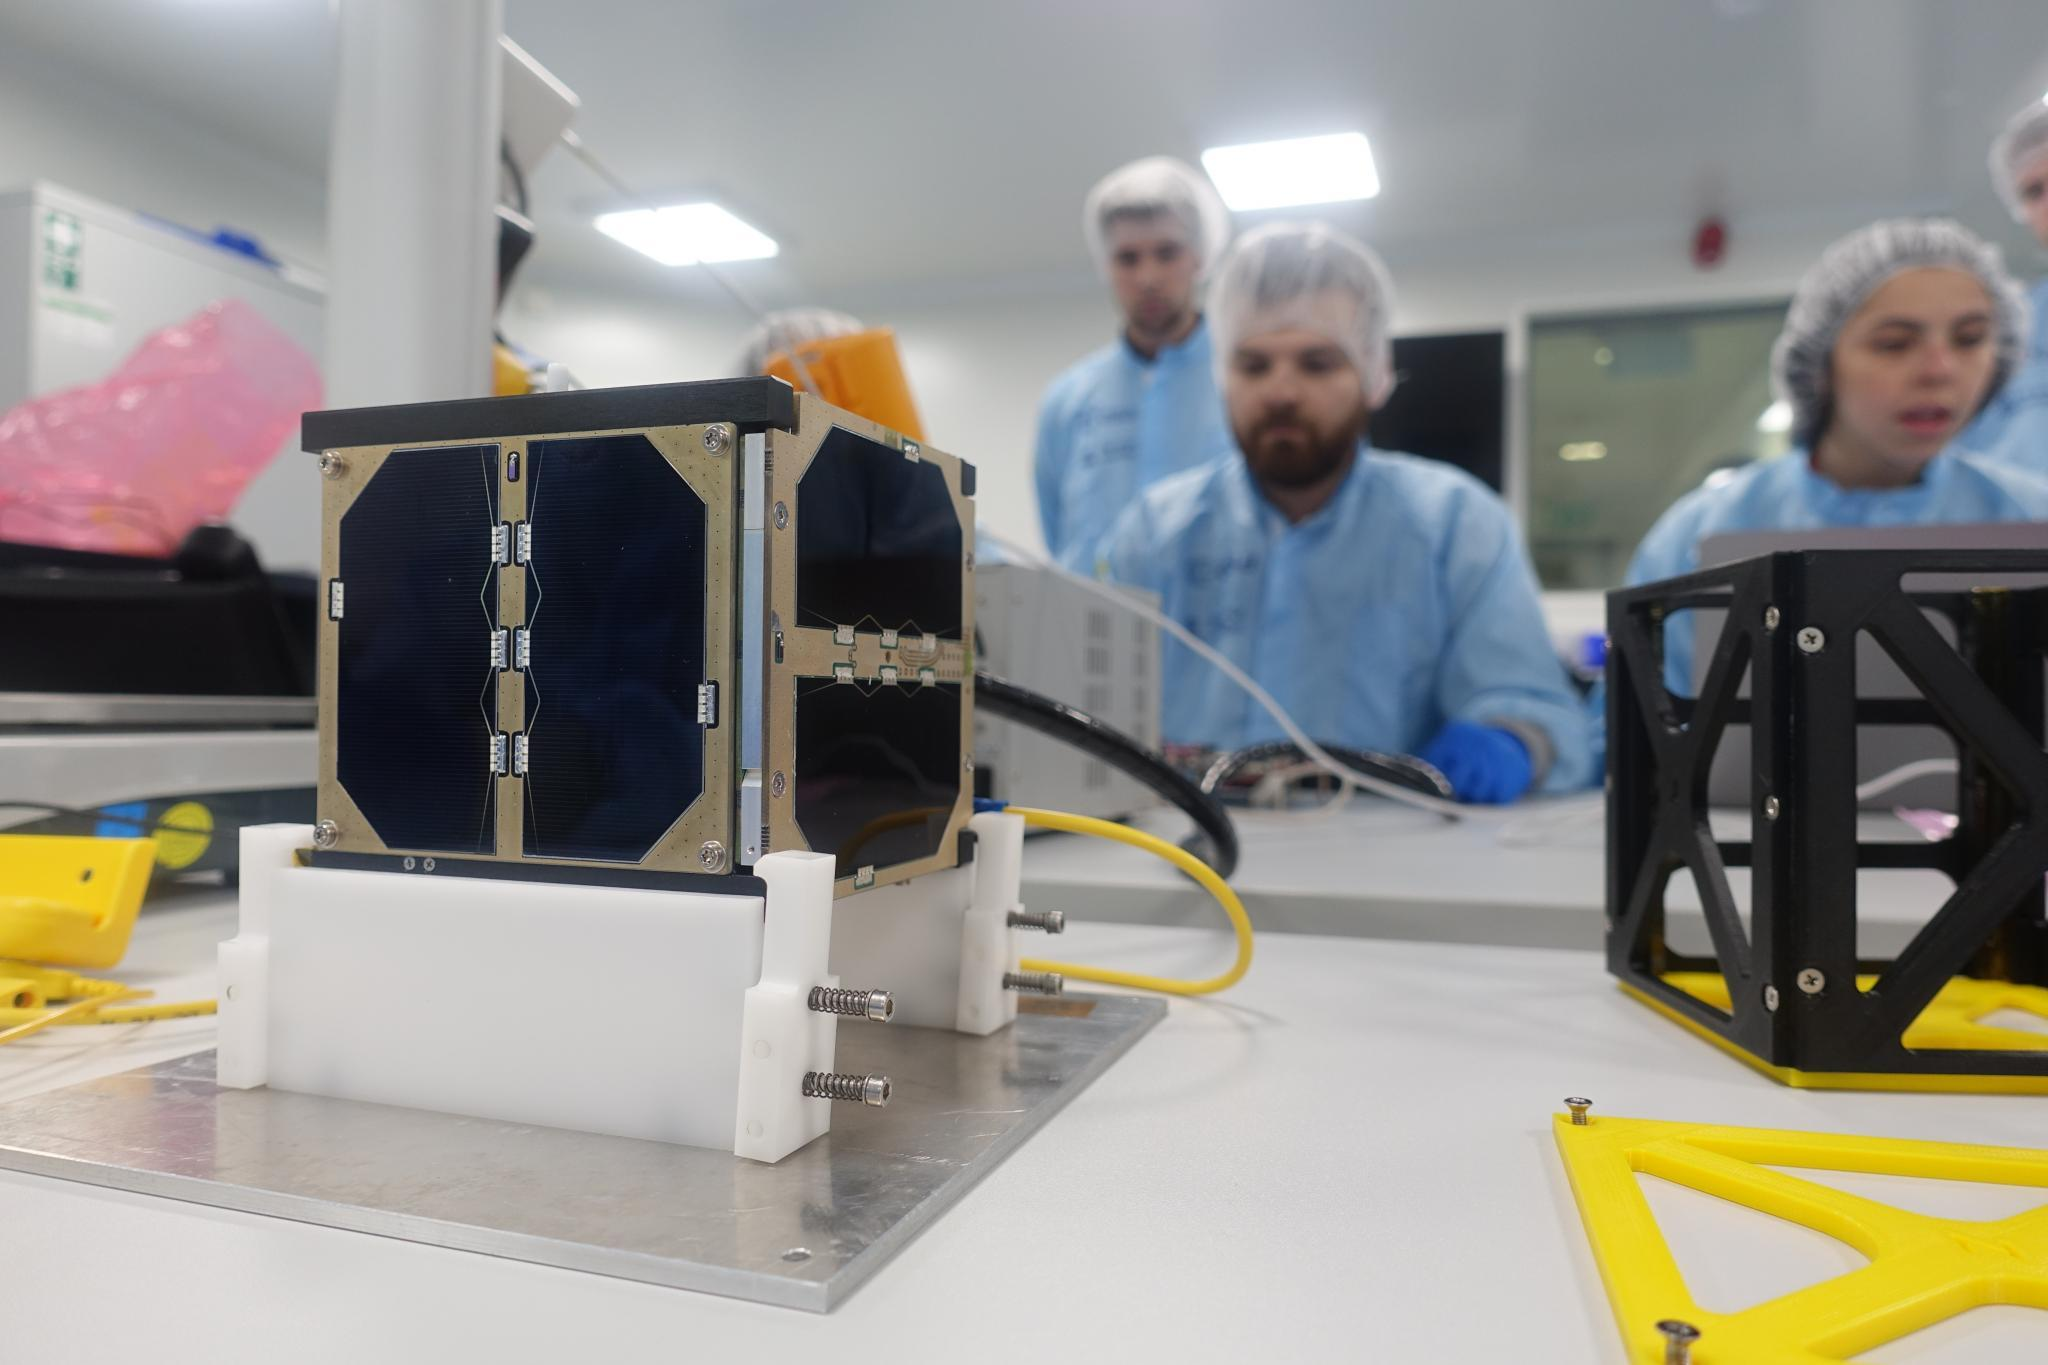 En cube-satellitt i studentprogrammet Fly Your Satellite er klar for testing. Foto: ESA